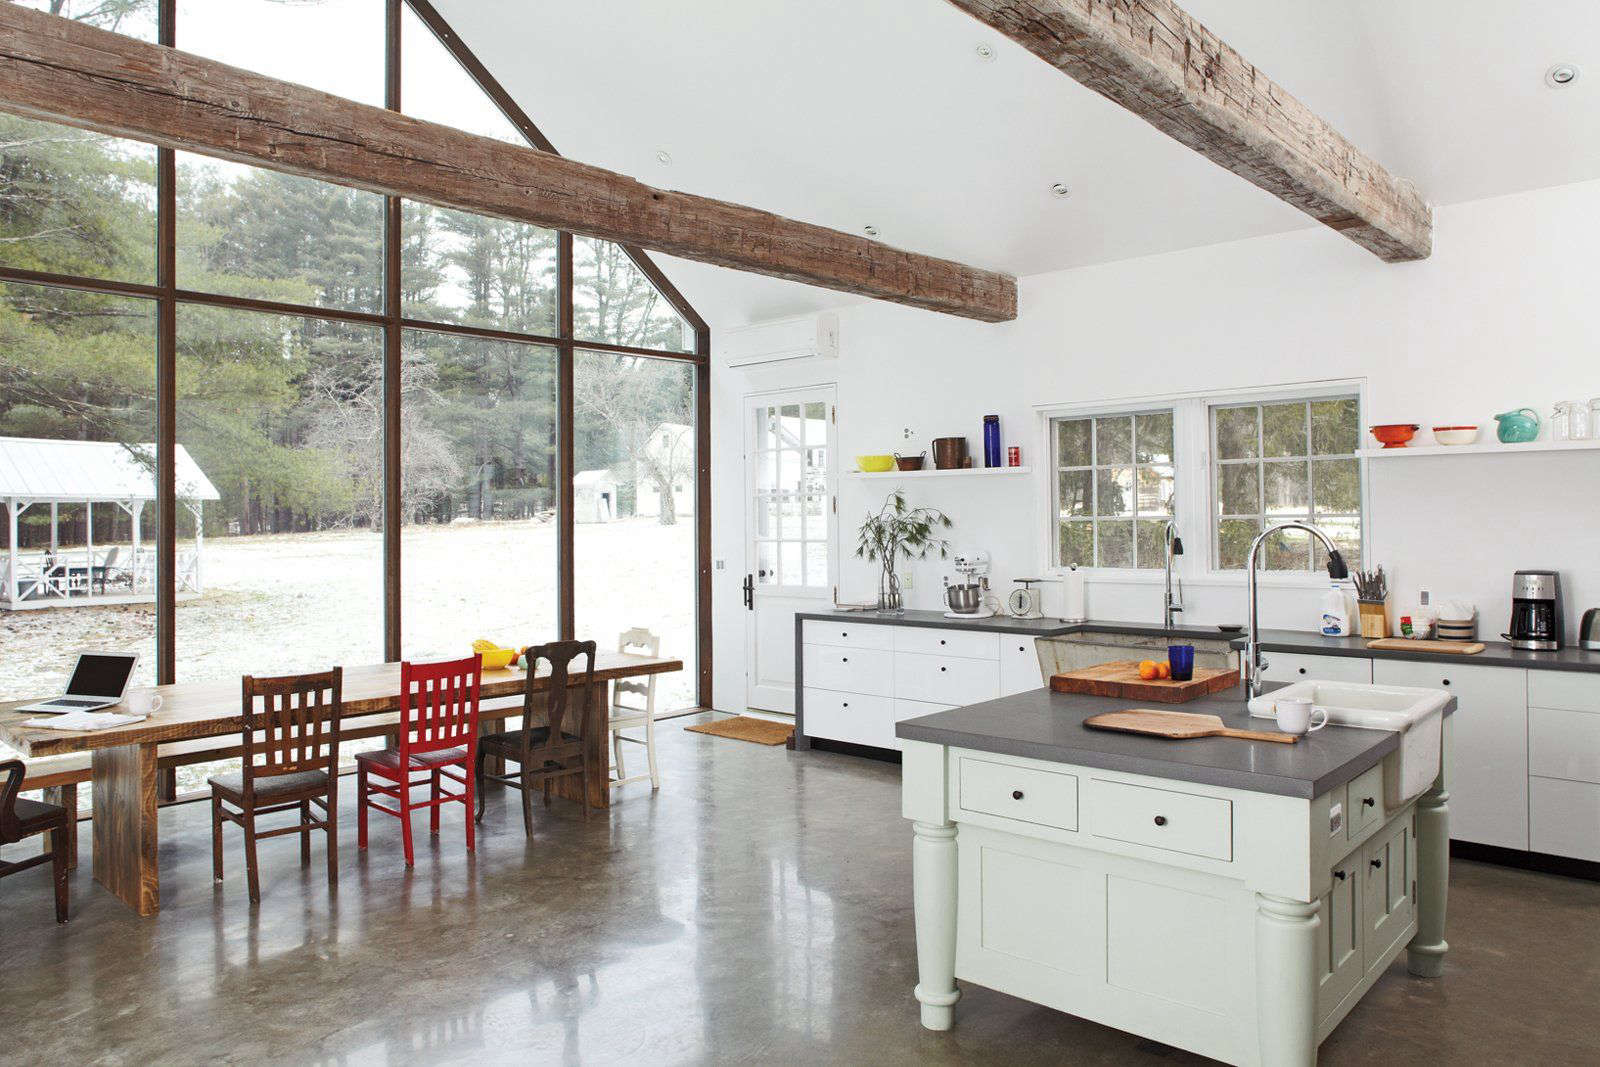 The kitchen layout is based on the original footprint of the two demolished shelters. The glass steel window frame mirrors the lines of the original farmhouse windows. The beams, salvaged from a 0-year-old barn in Pennsylvania, were engineered to work with the steel window frame and skyscraper glass.